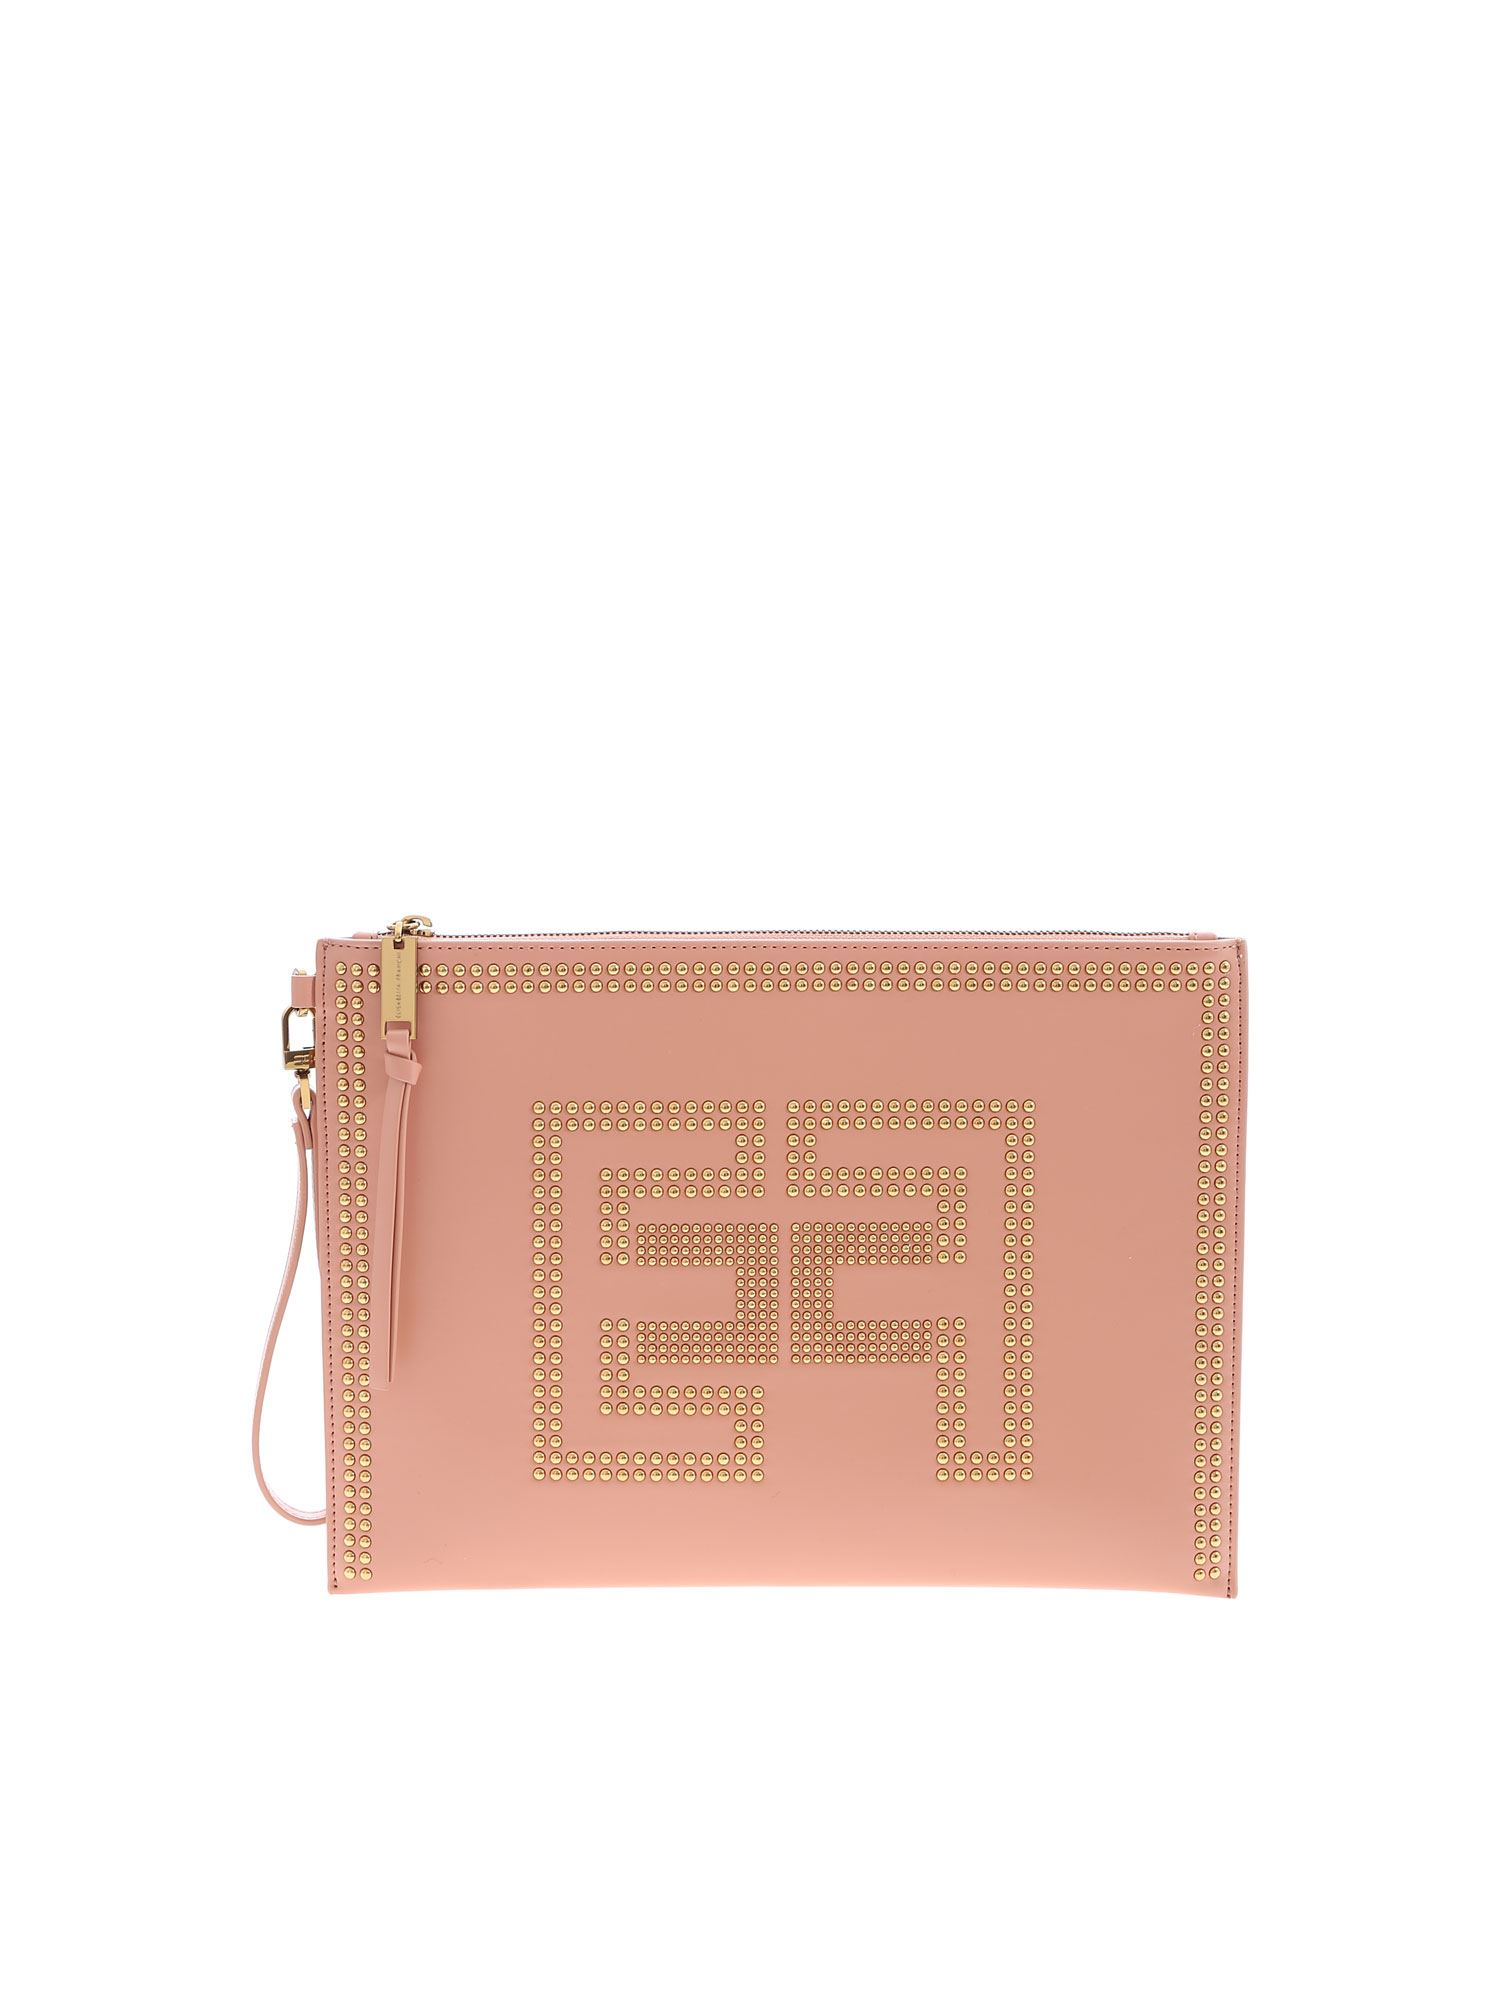 Elisabetta Franchi LOGO CLUTCH BAG IN PINK